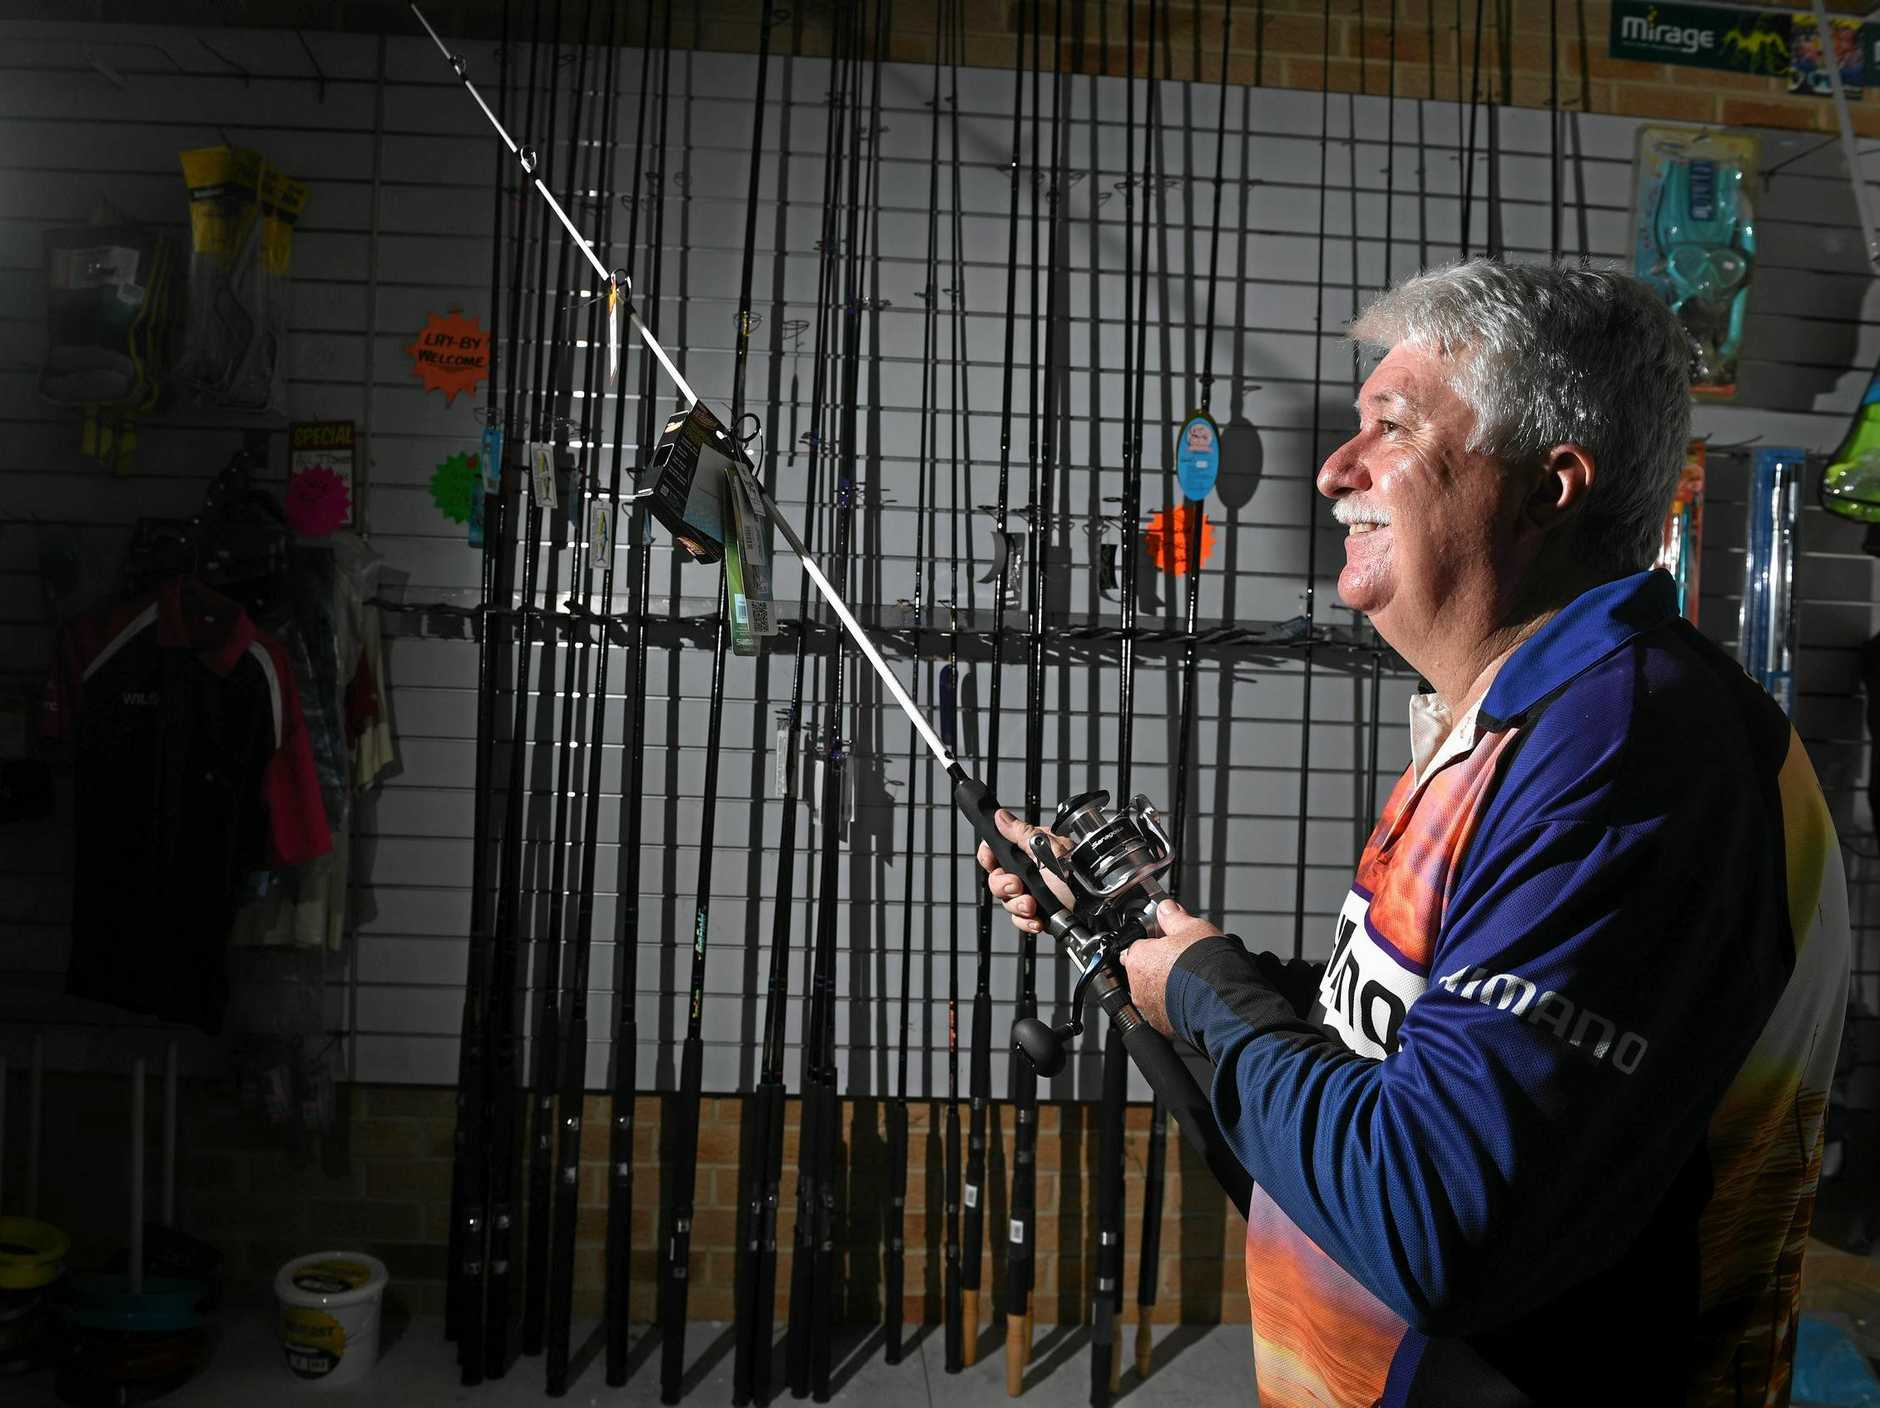 Dave's Bait Shop co-owner Ian Hush has fond memories of the store where he served many customers who were all eager to share their fishing adventures.